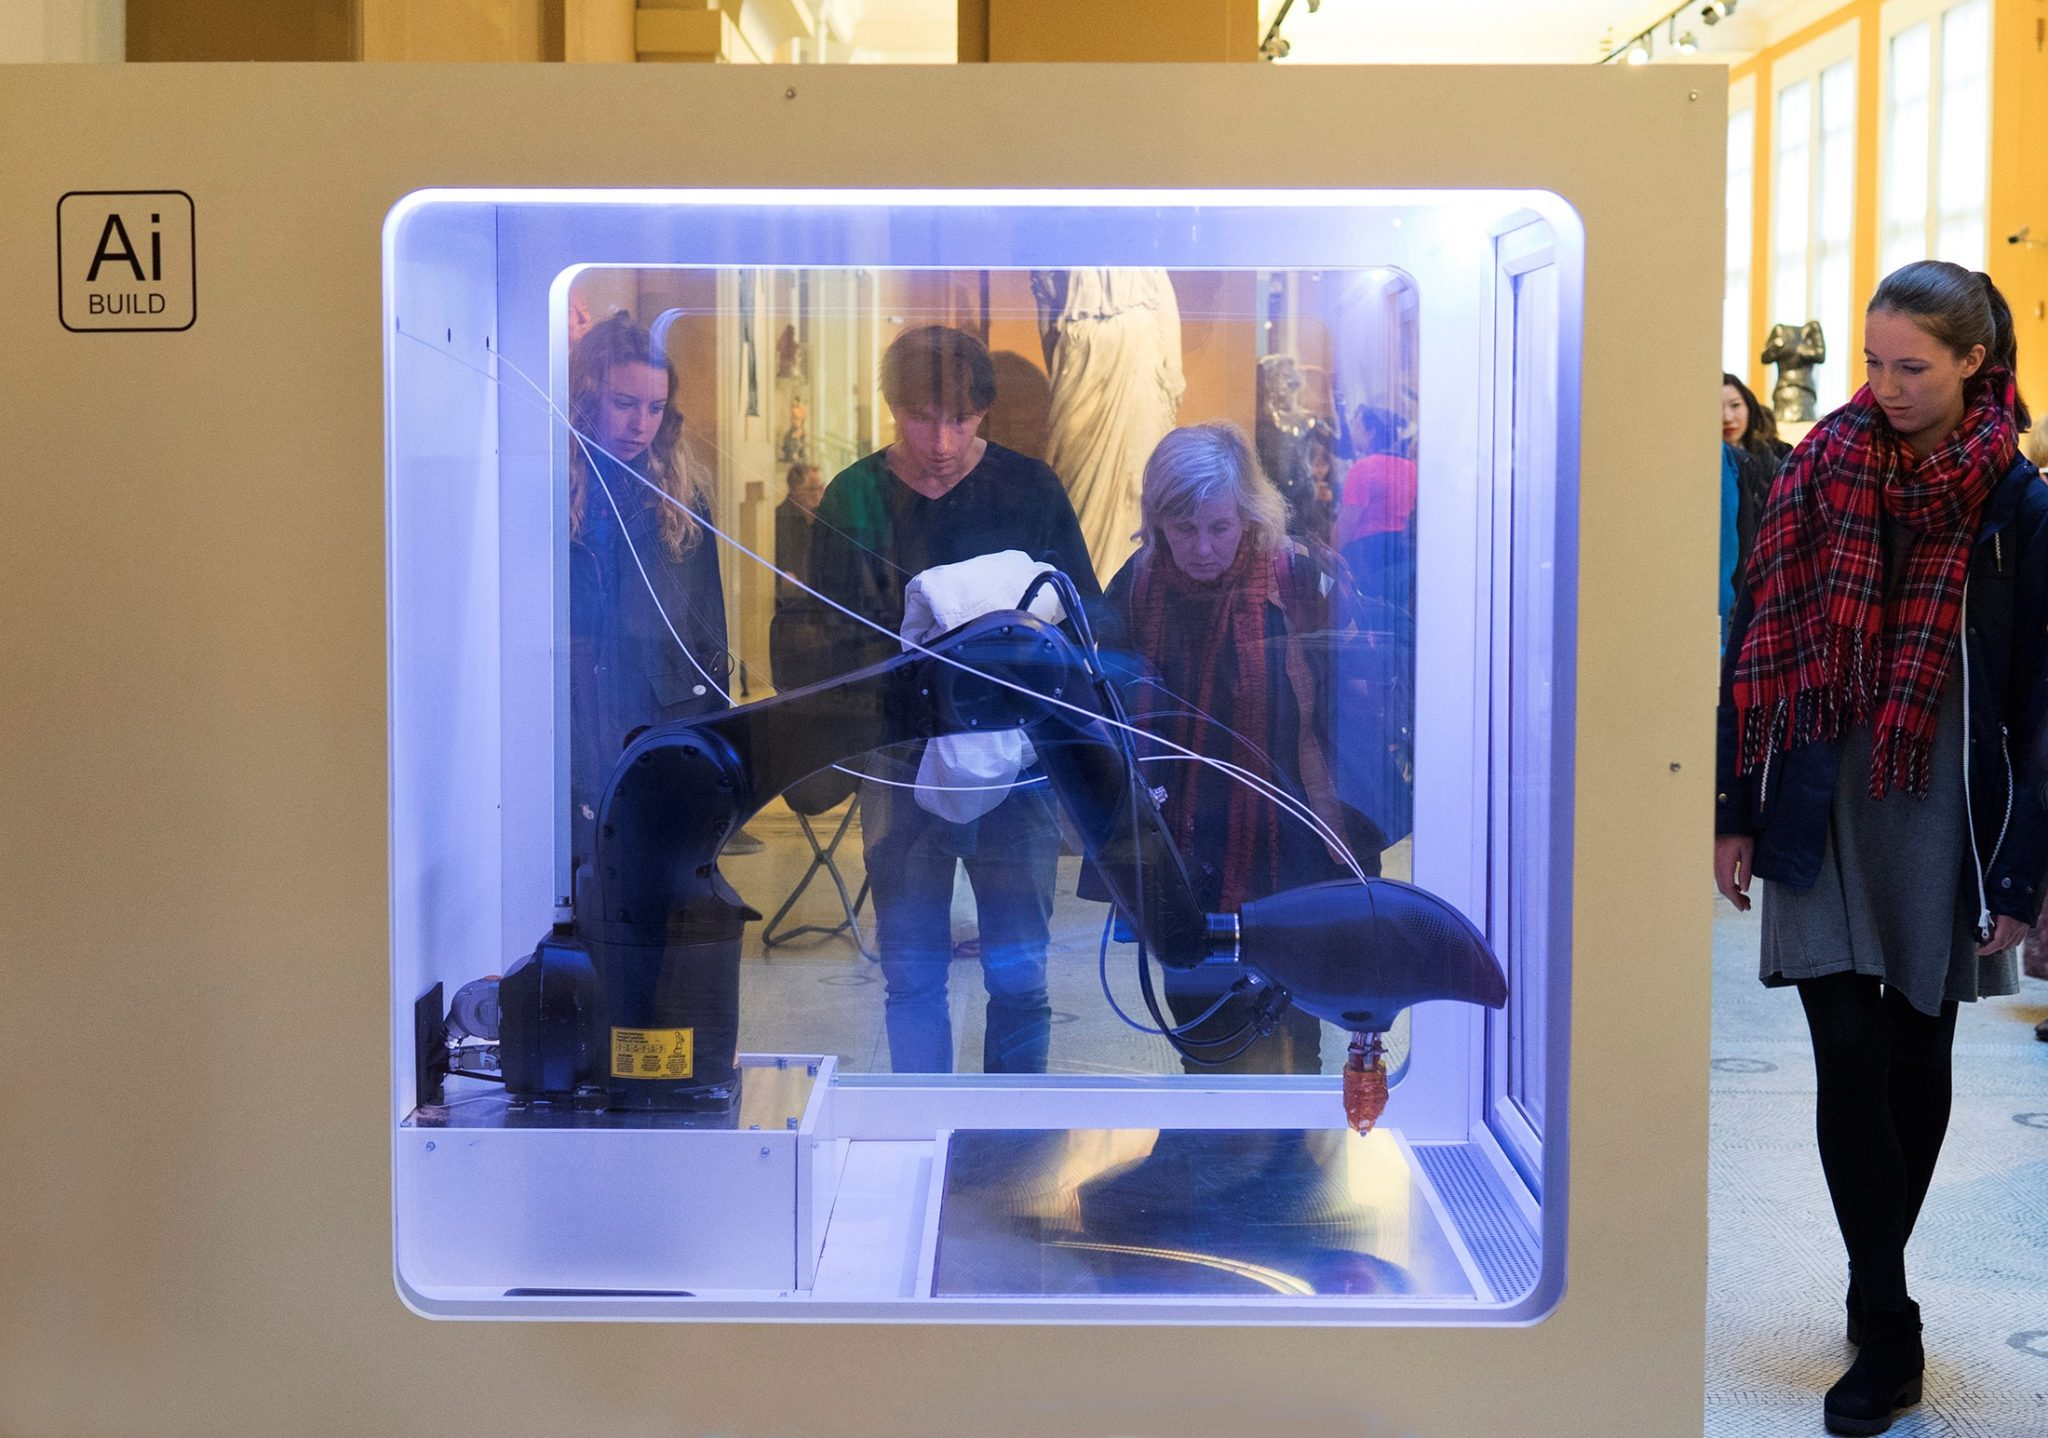 The AiMaker 3D printing inside the AiCell. Photo via Ai Build